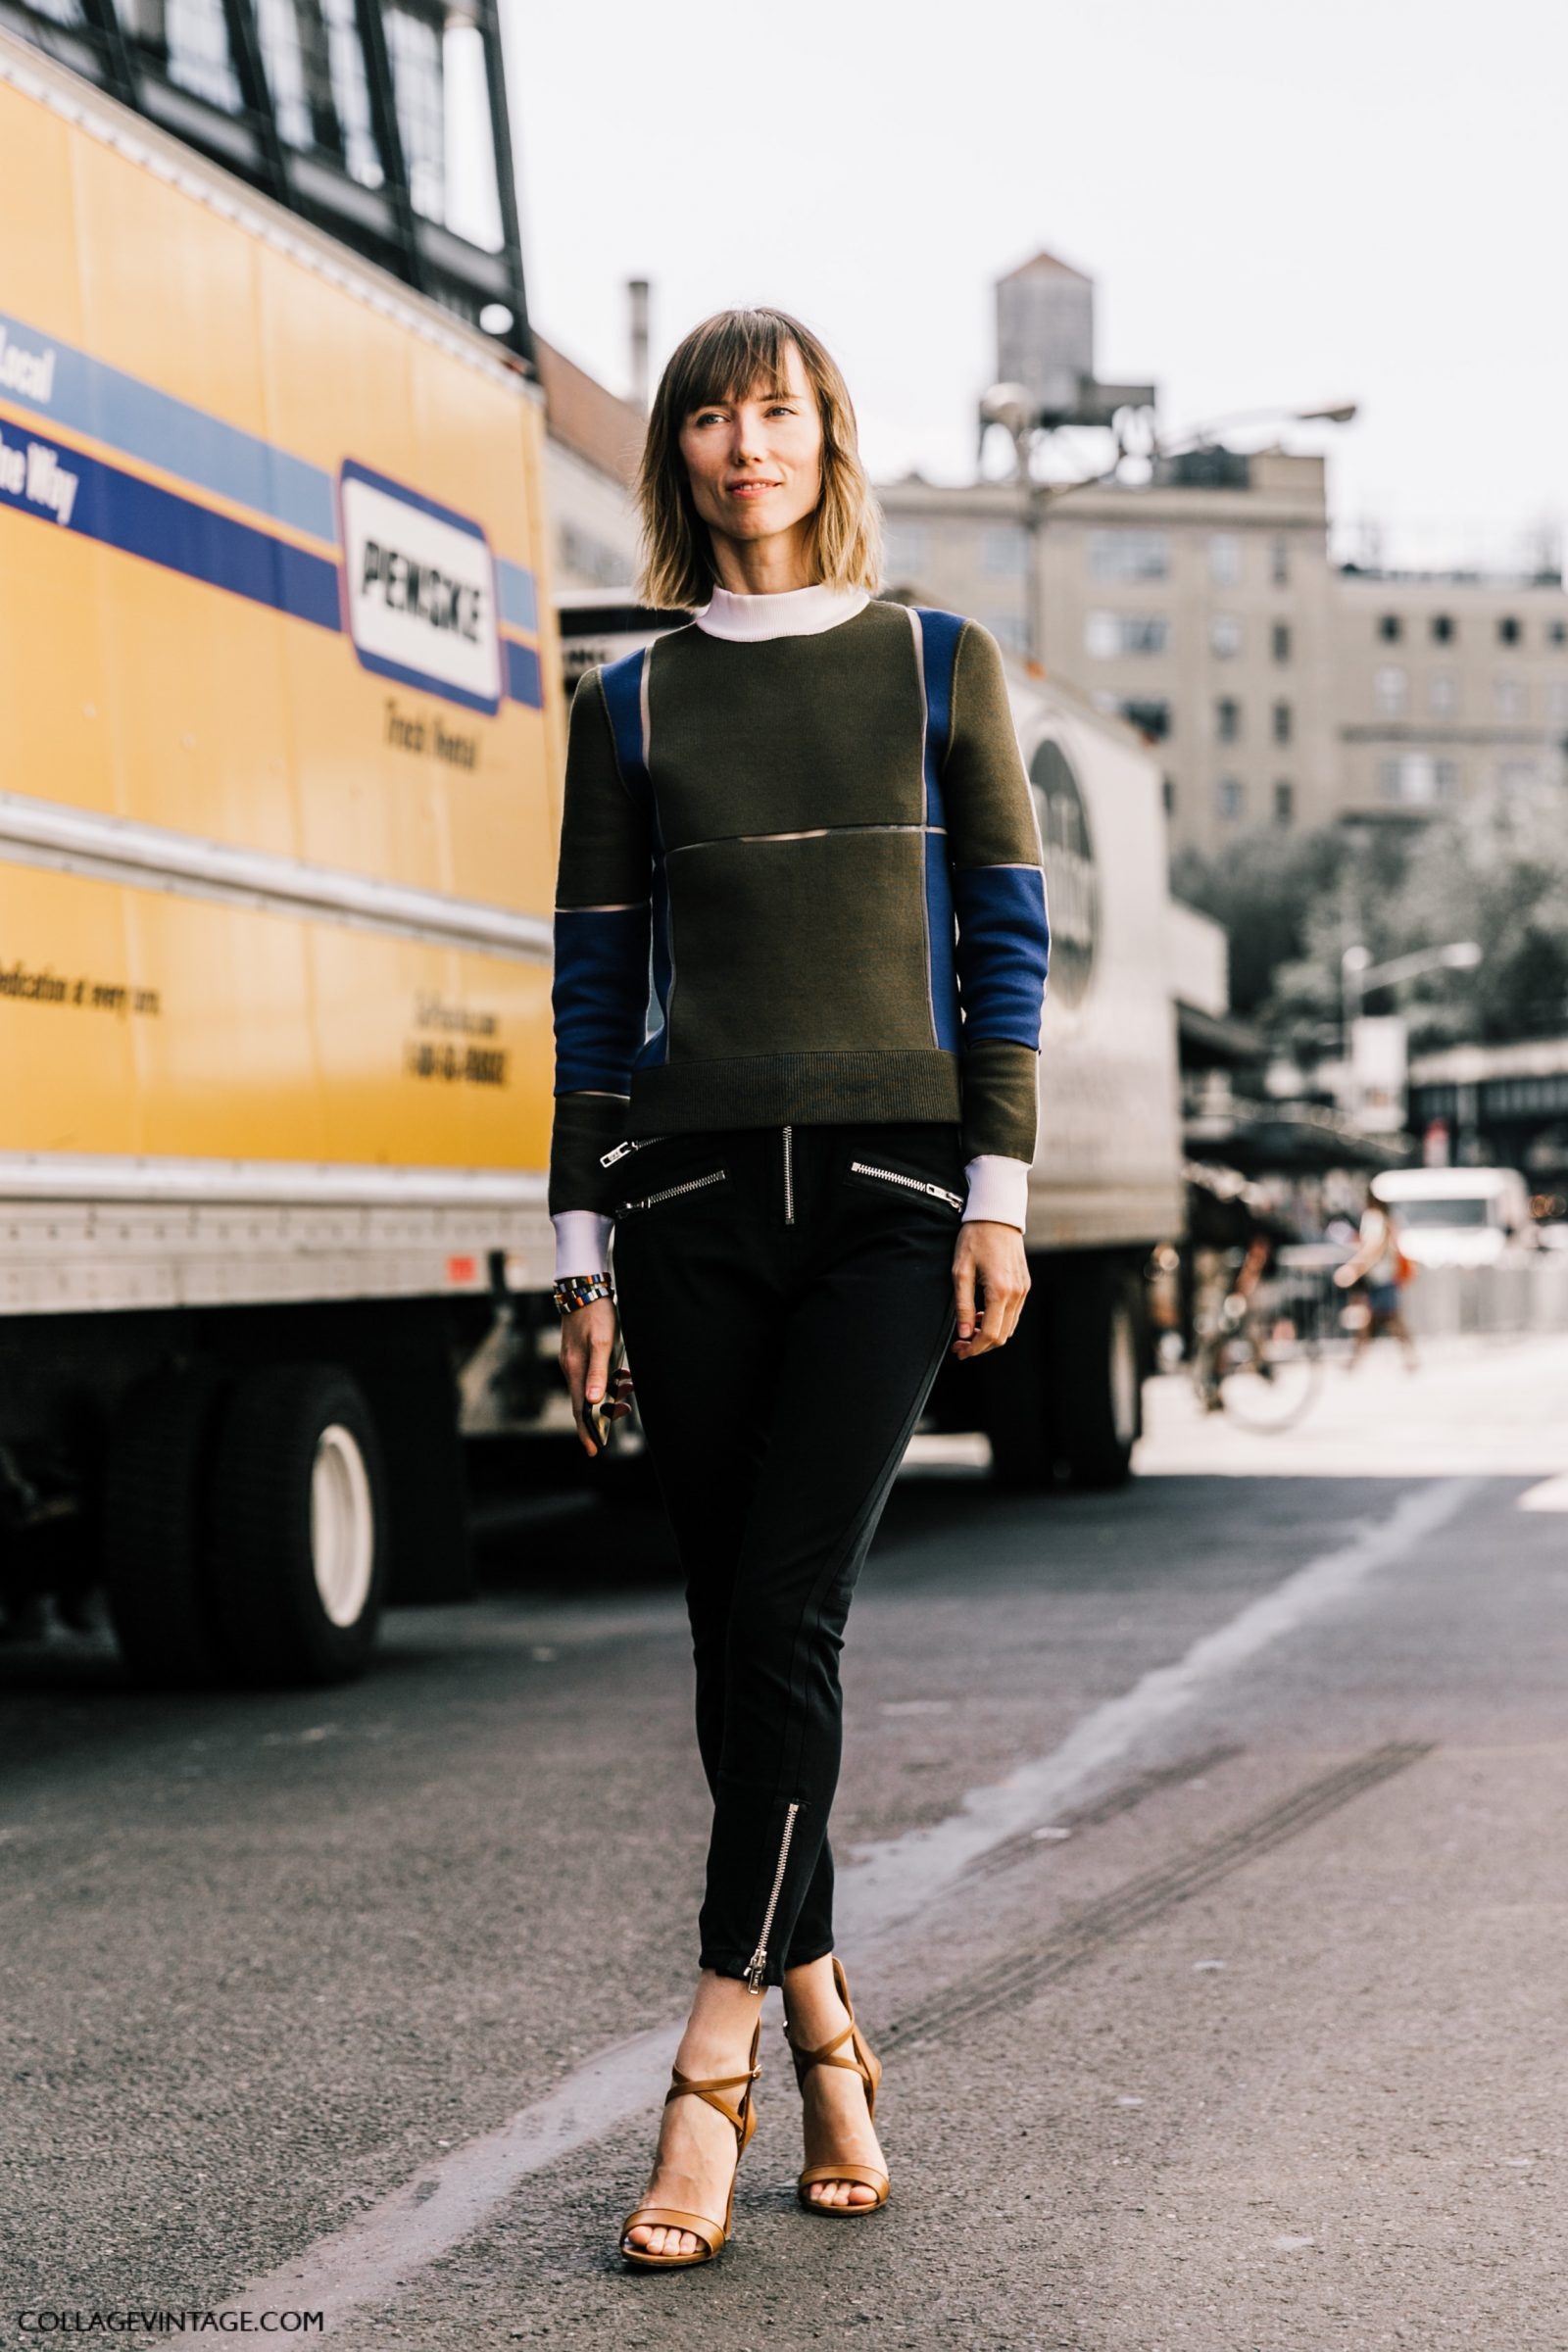 nyfw-new_york_fashion_week_ss17-street_style-outfits-collage_vintage-vintage-phillip_lim-the-row-proenza_schouler-rossie_aussolin-125